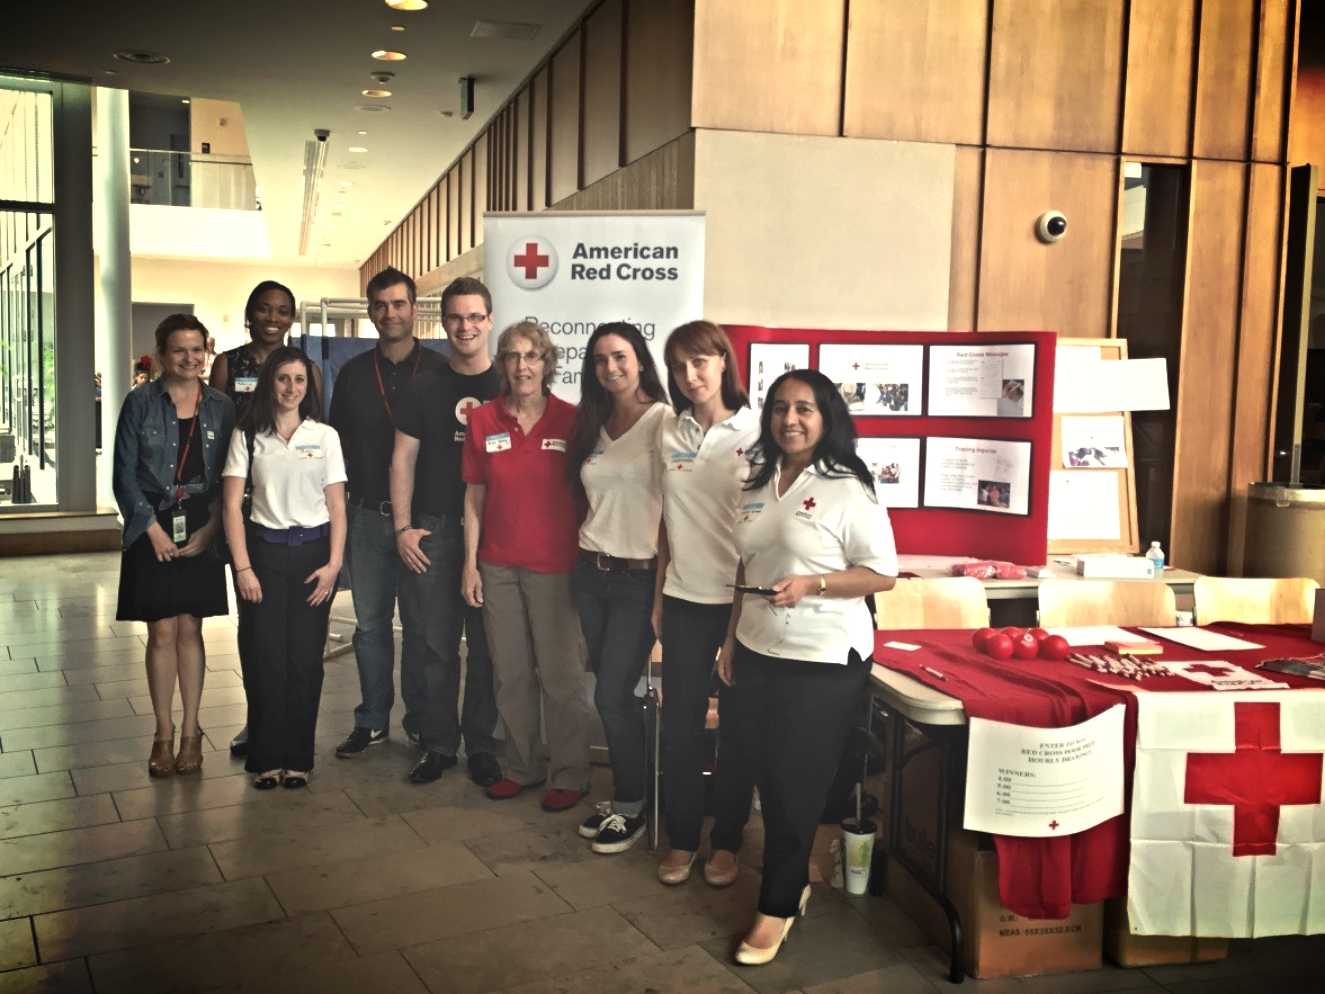 Red Cross volunteers and staff celebrate World Refugee Day in Silver Spring, MD